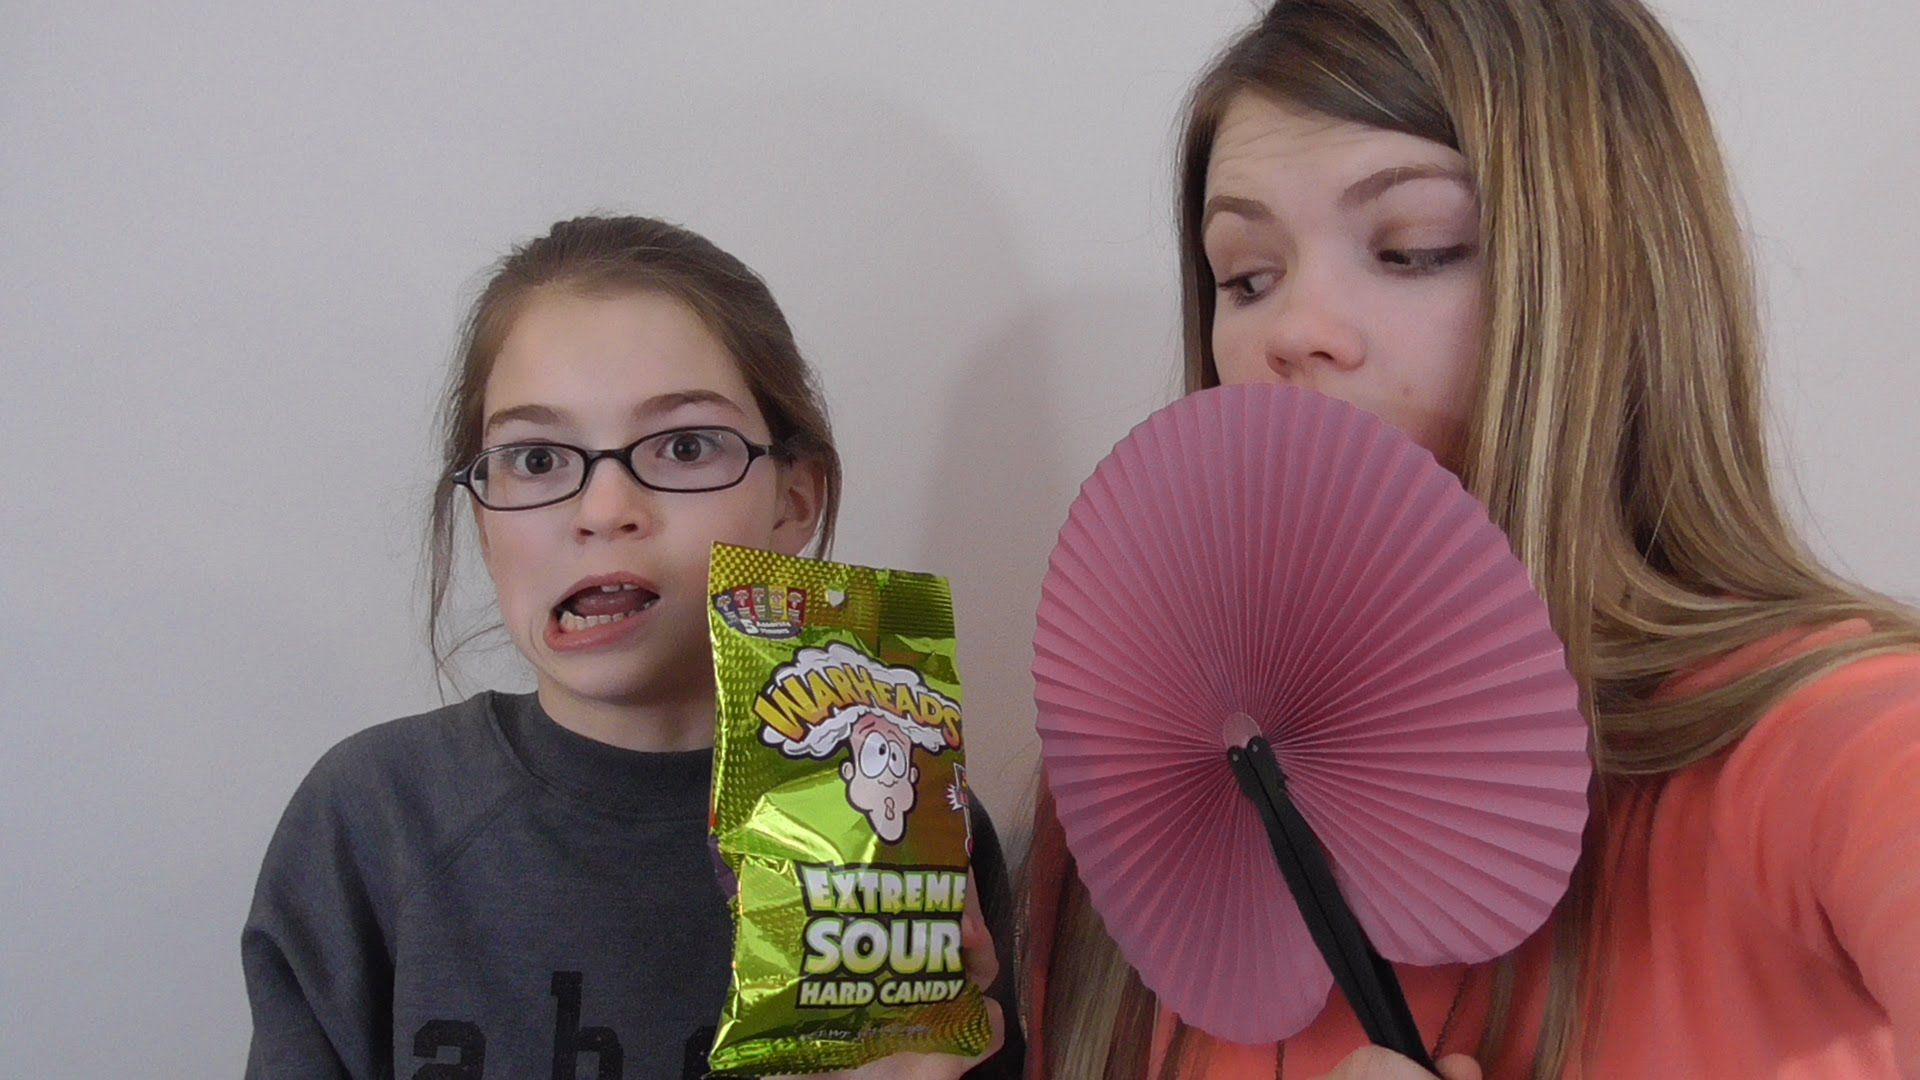 Warheads Challenge That Youtub3 Family That Youtube Family Just Jordan 33